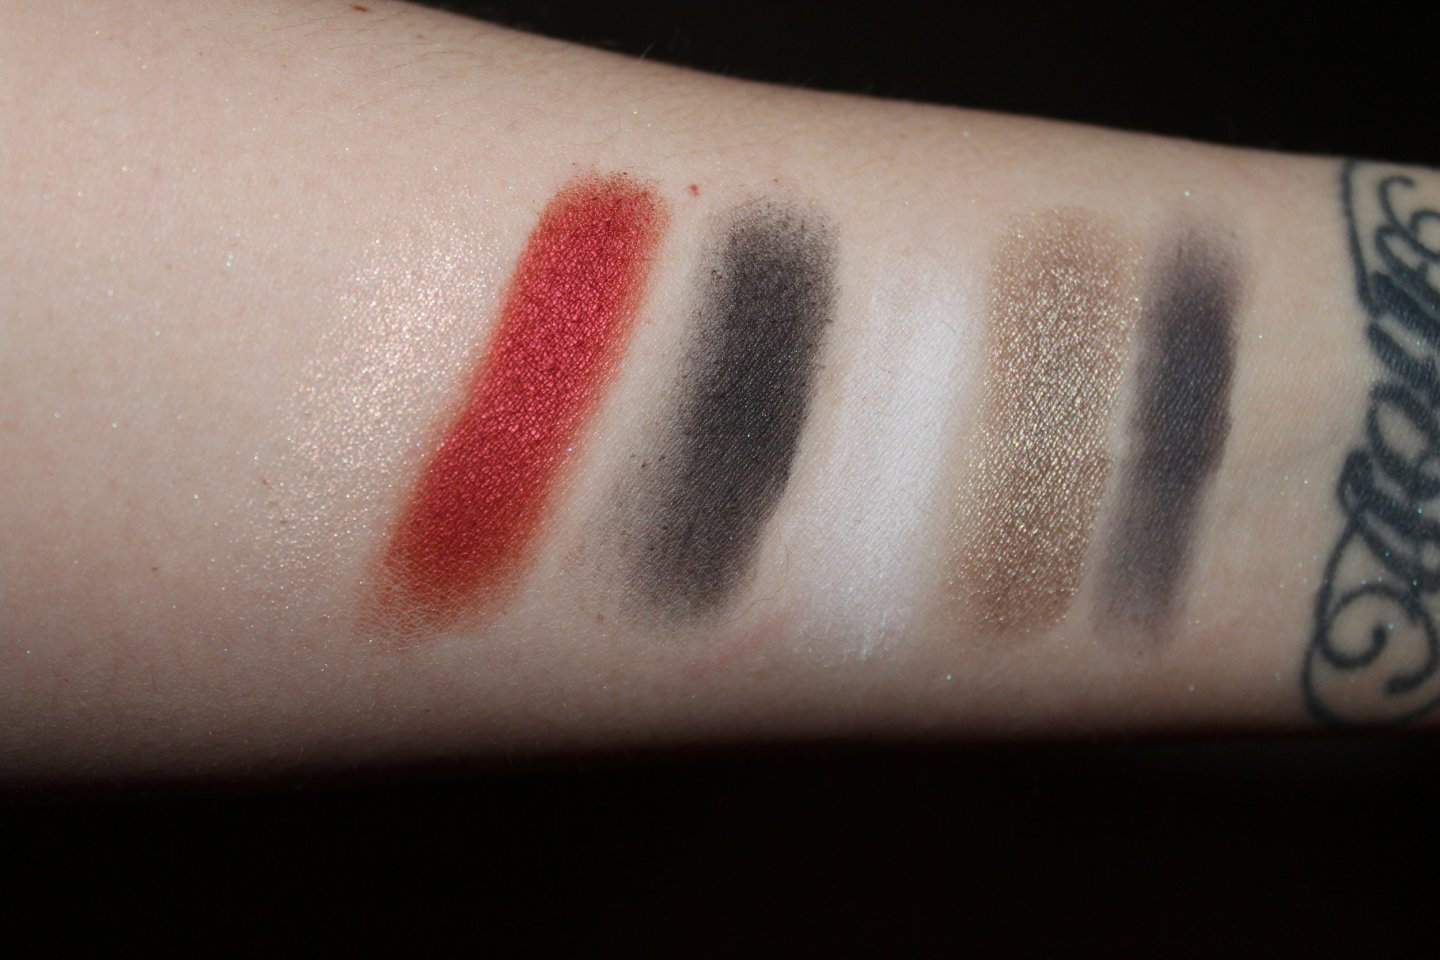 From left to right: Lovestruck (iridescent peach), Swoon (metallic scarlet), Devotion (matte jet black), Por Vida (matte white), Darling (metallic pewter), and Yours (matte stone gray).